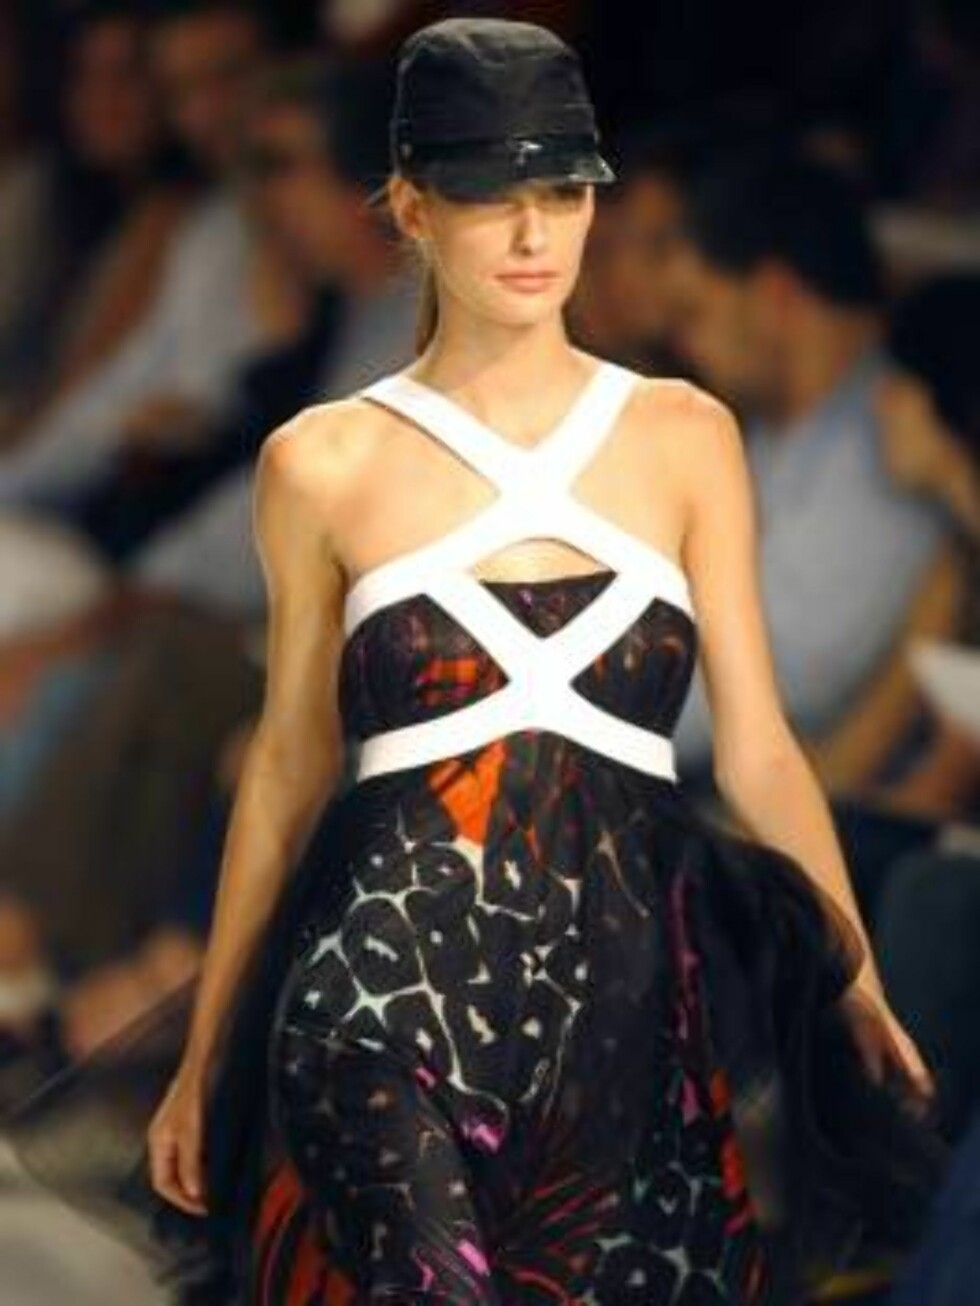 A model shows a design of  Forum's collection during the Sao Paulo Fashion Week in Sao Paulo, Brazil, on Friday, July 14, 2006.   (AP Photo/Andre Penner) Foto: AP/Scanpix